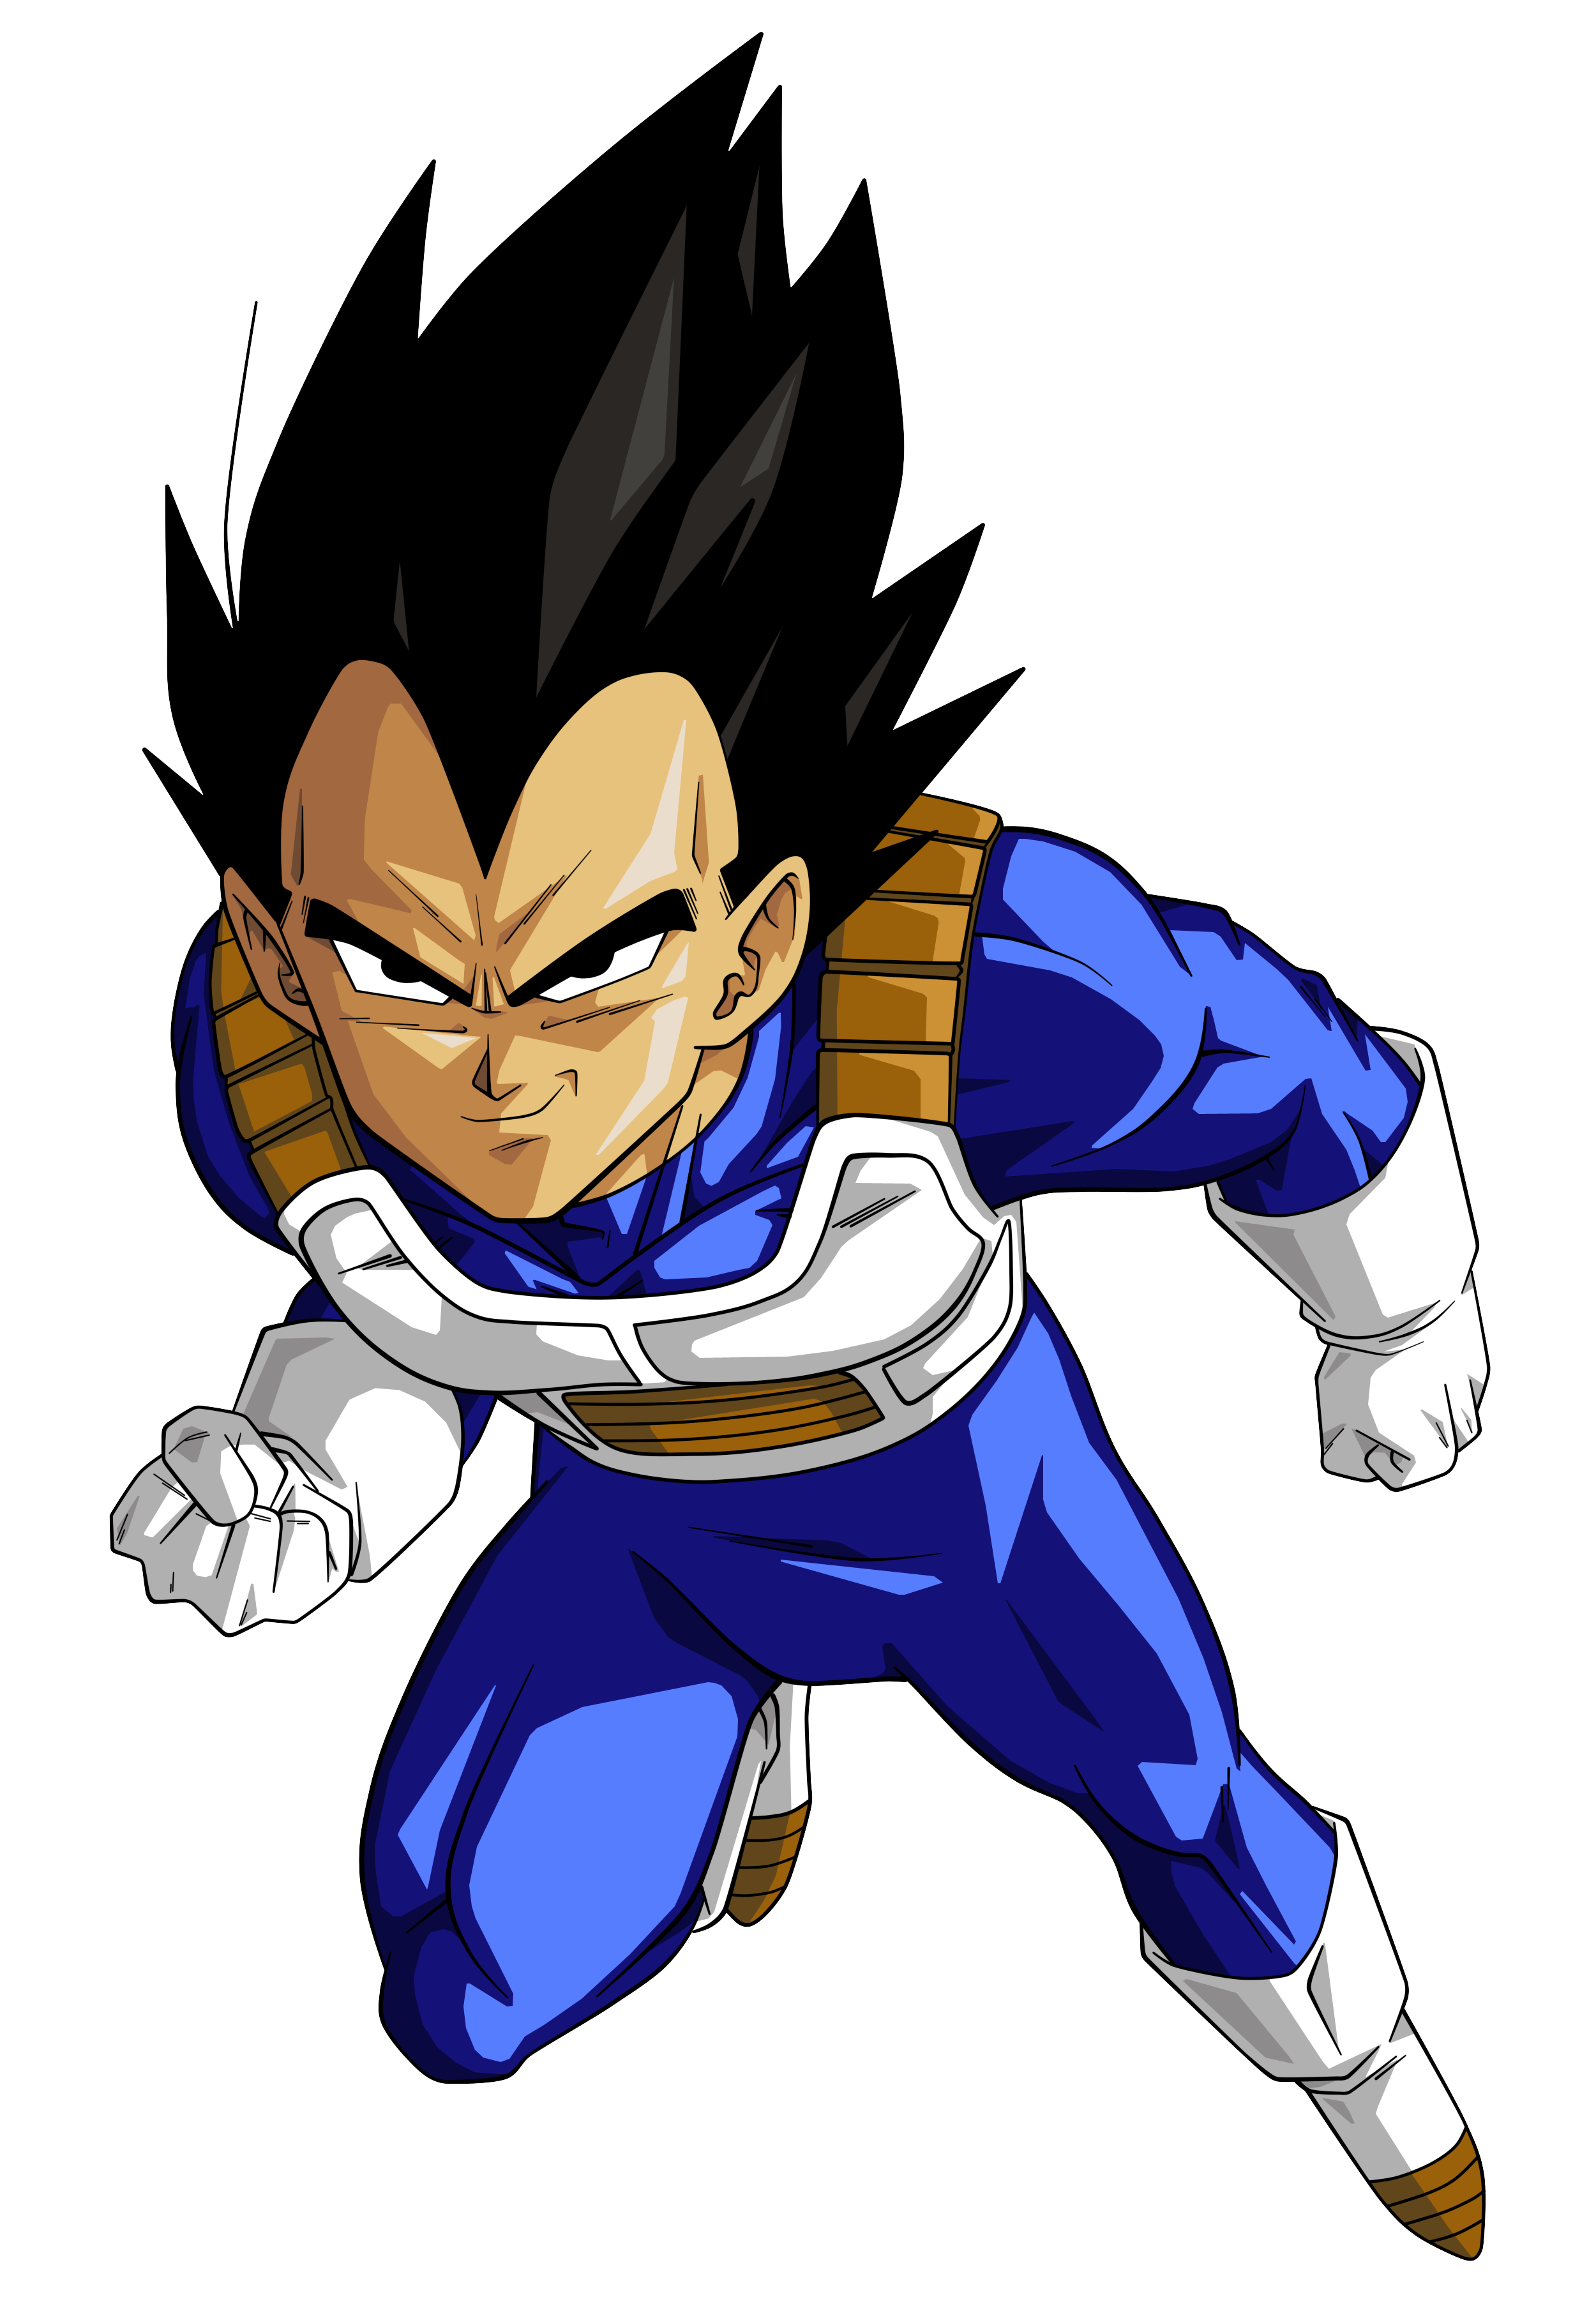 Vegeta Hd PNG Image - Dragon Ball PNG